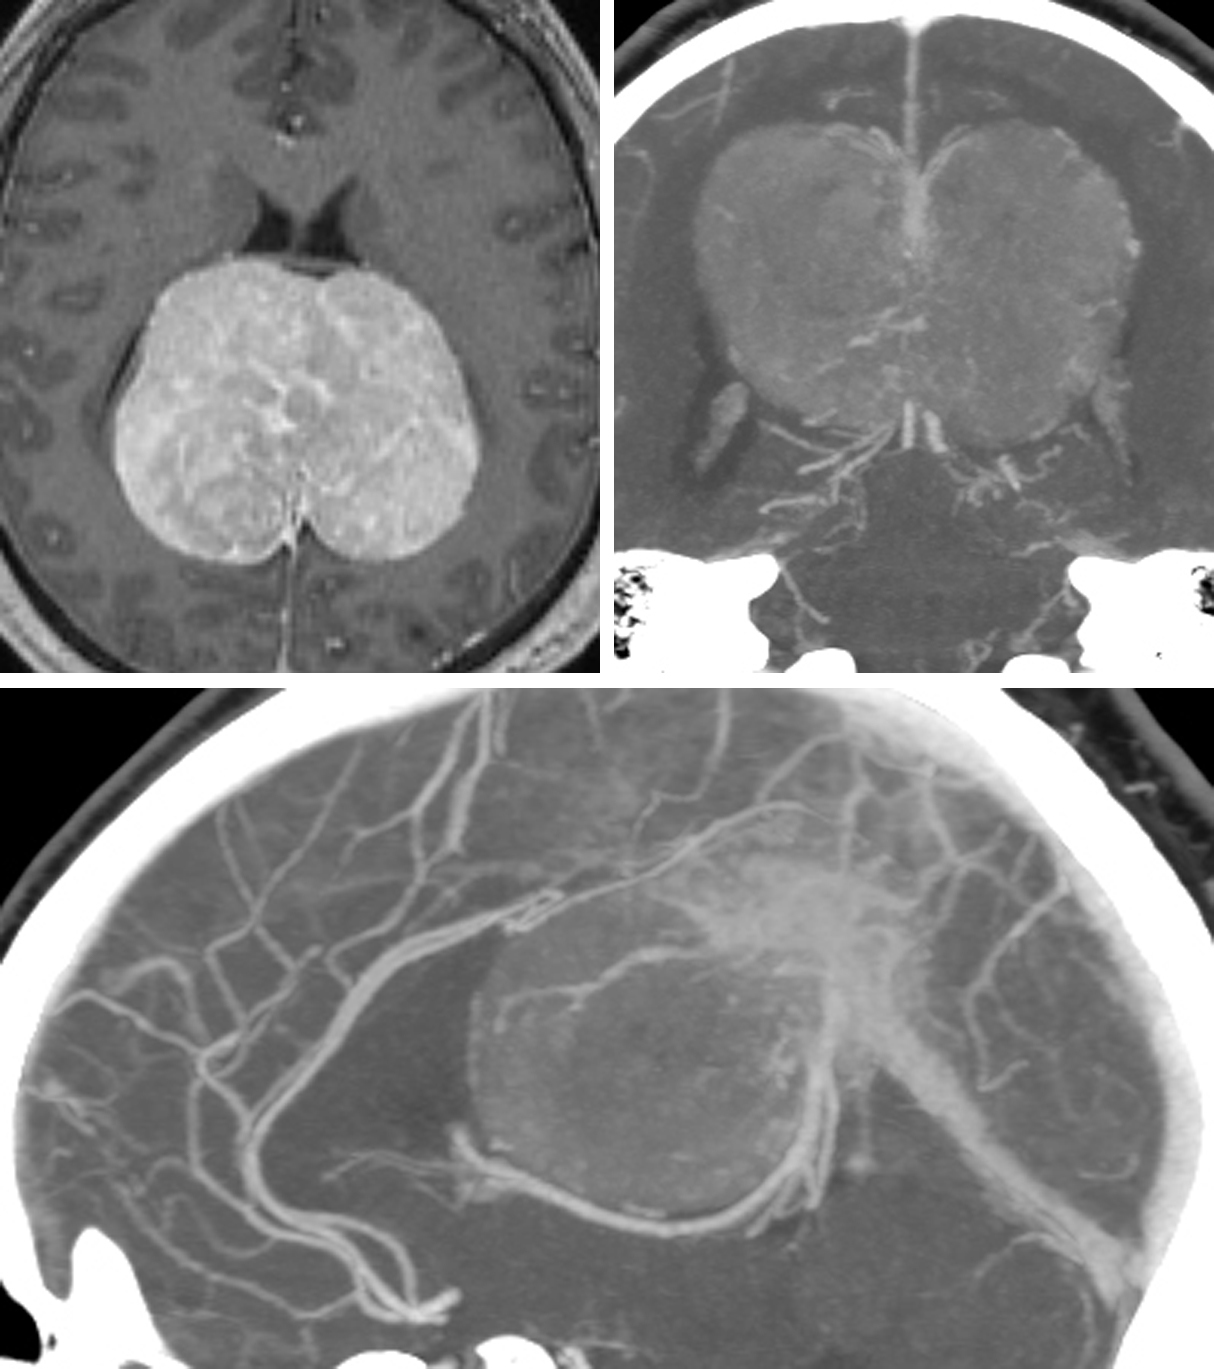 Figure 1: A giant anterior falcotentorial meningioma is shown (top row of images). Note the location of the deep veins at the lower pole of the tumor (bottom image). The major dural sinuses were unaffected by this tumor.